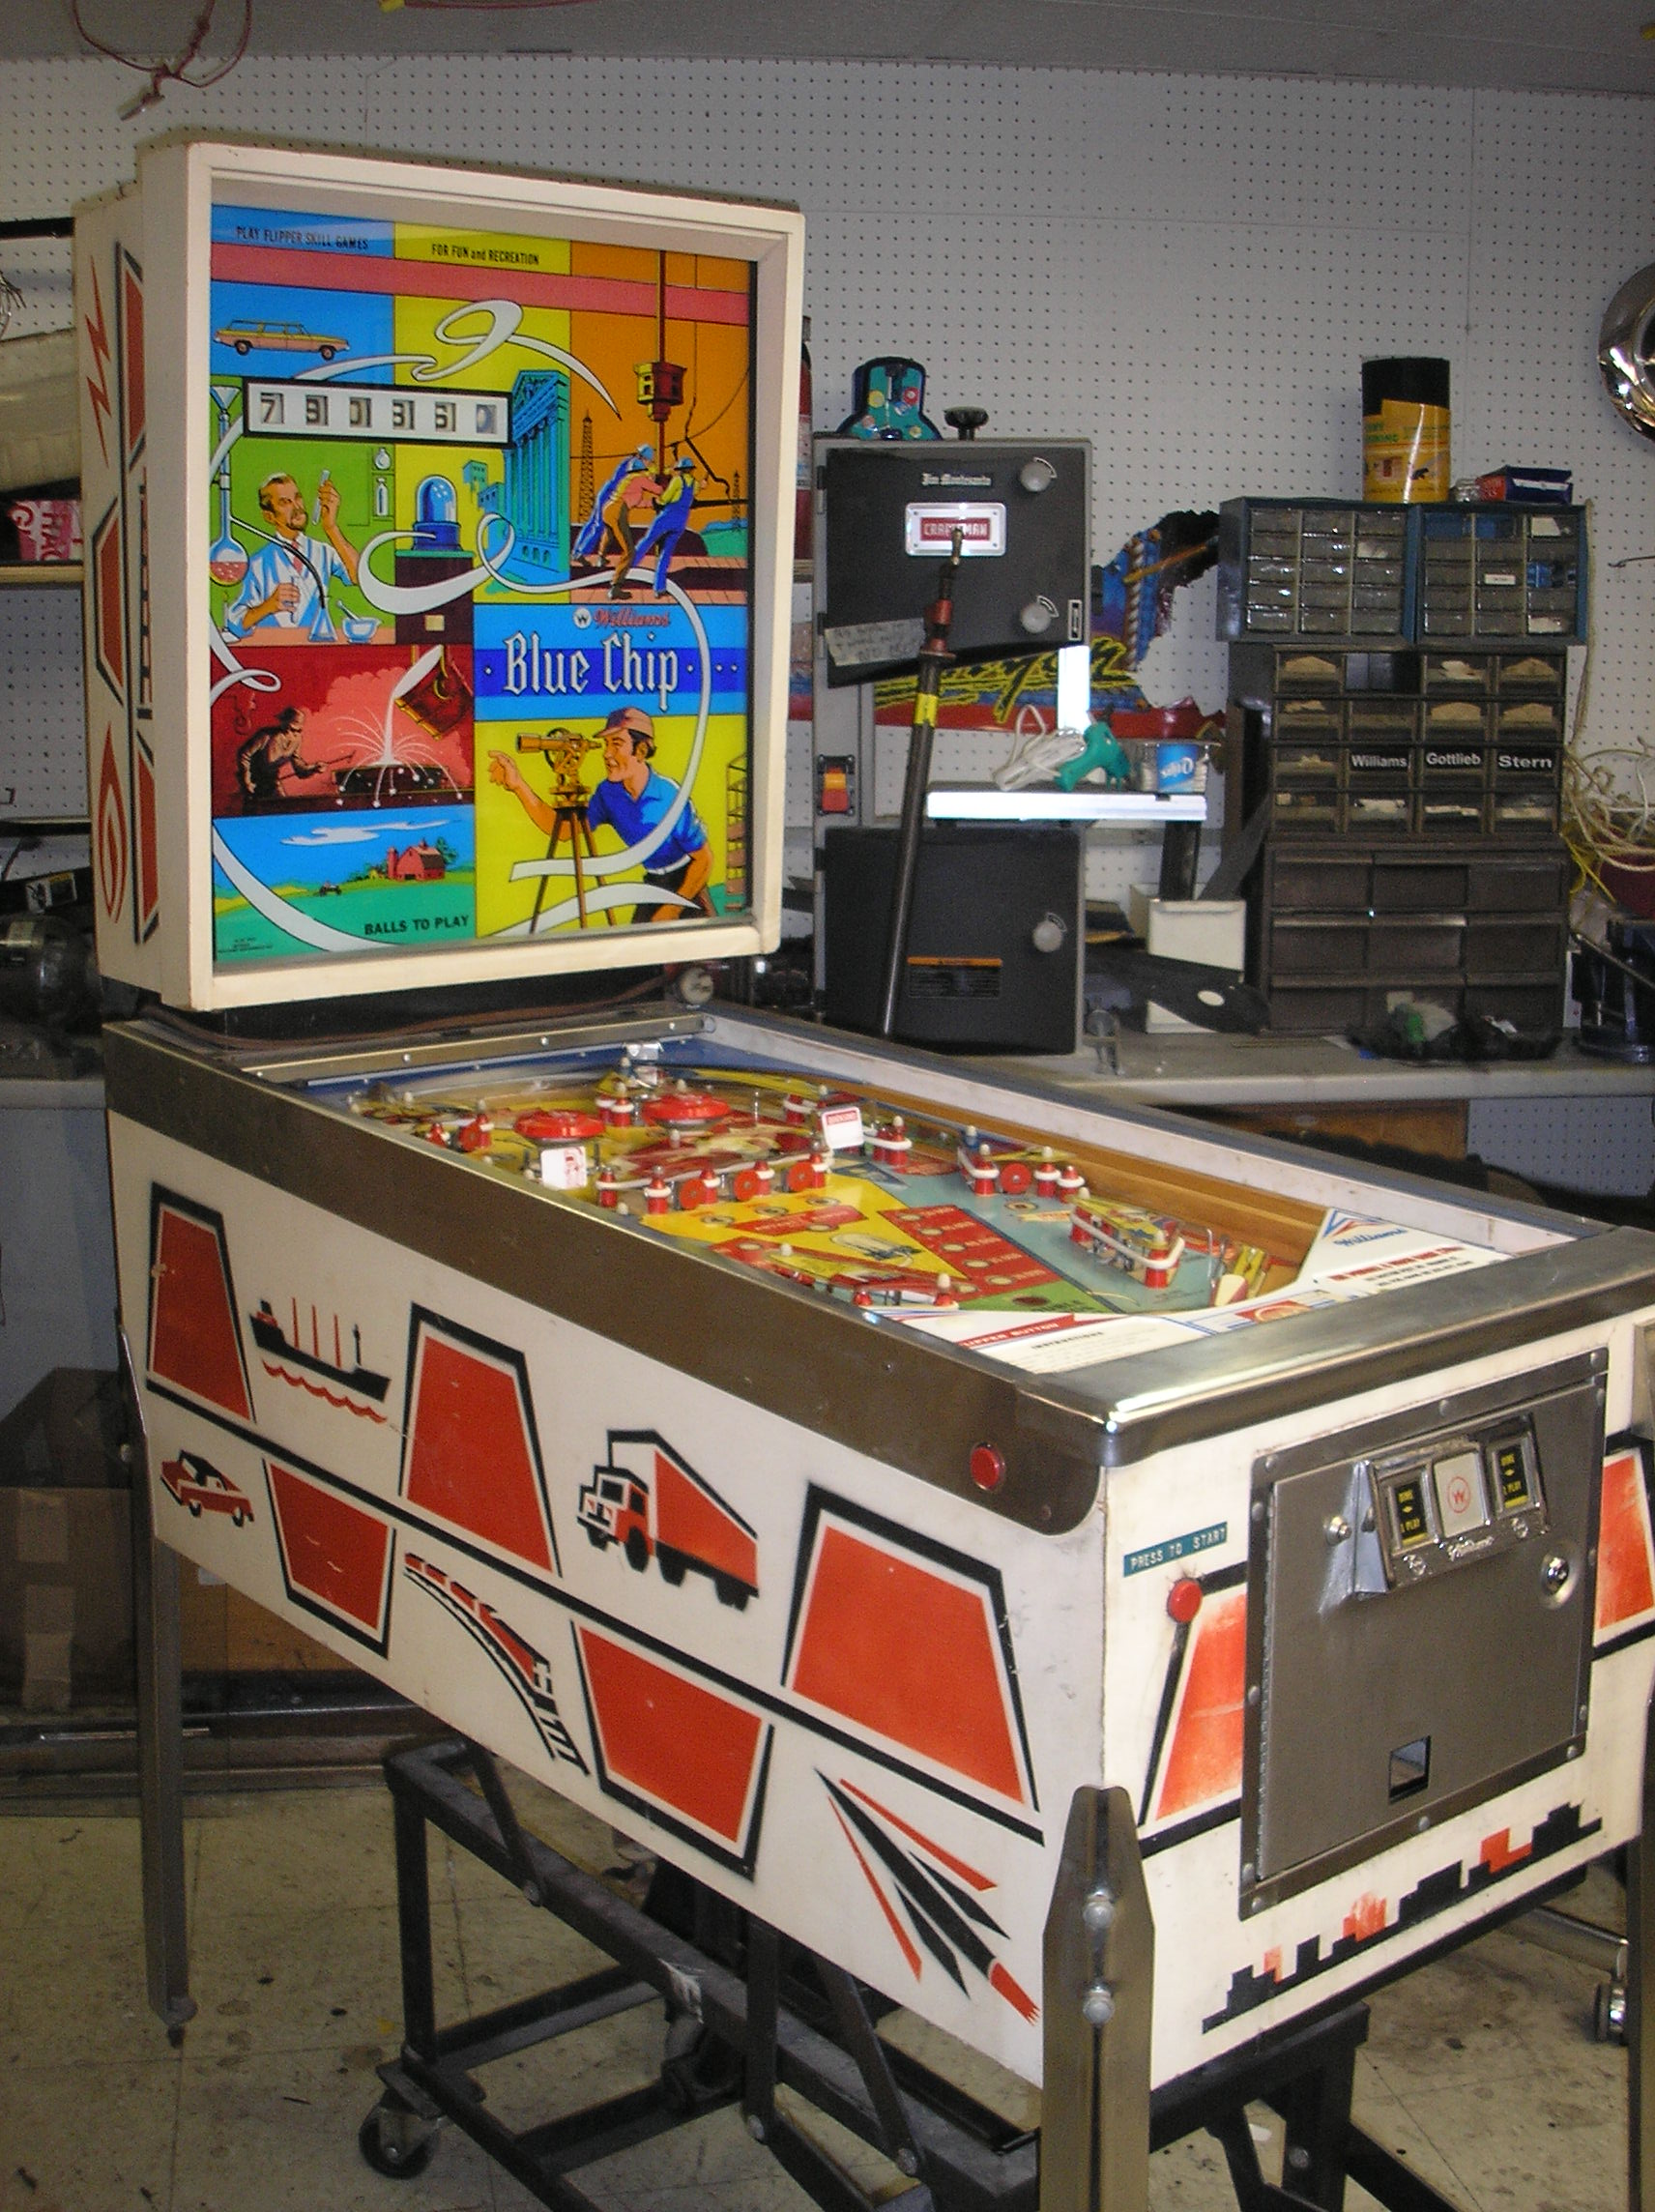 BLUE CHIP Pinball Machine Game for sale by Williams - A GILT